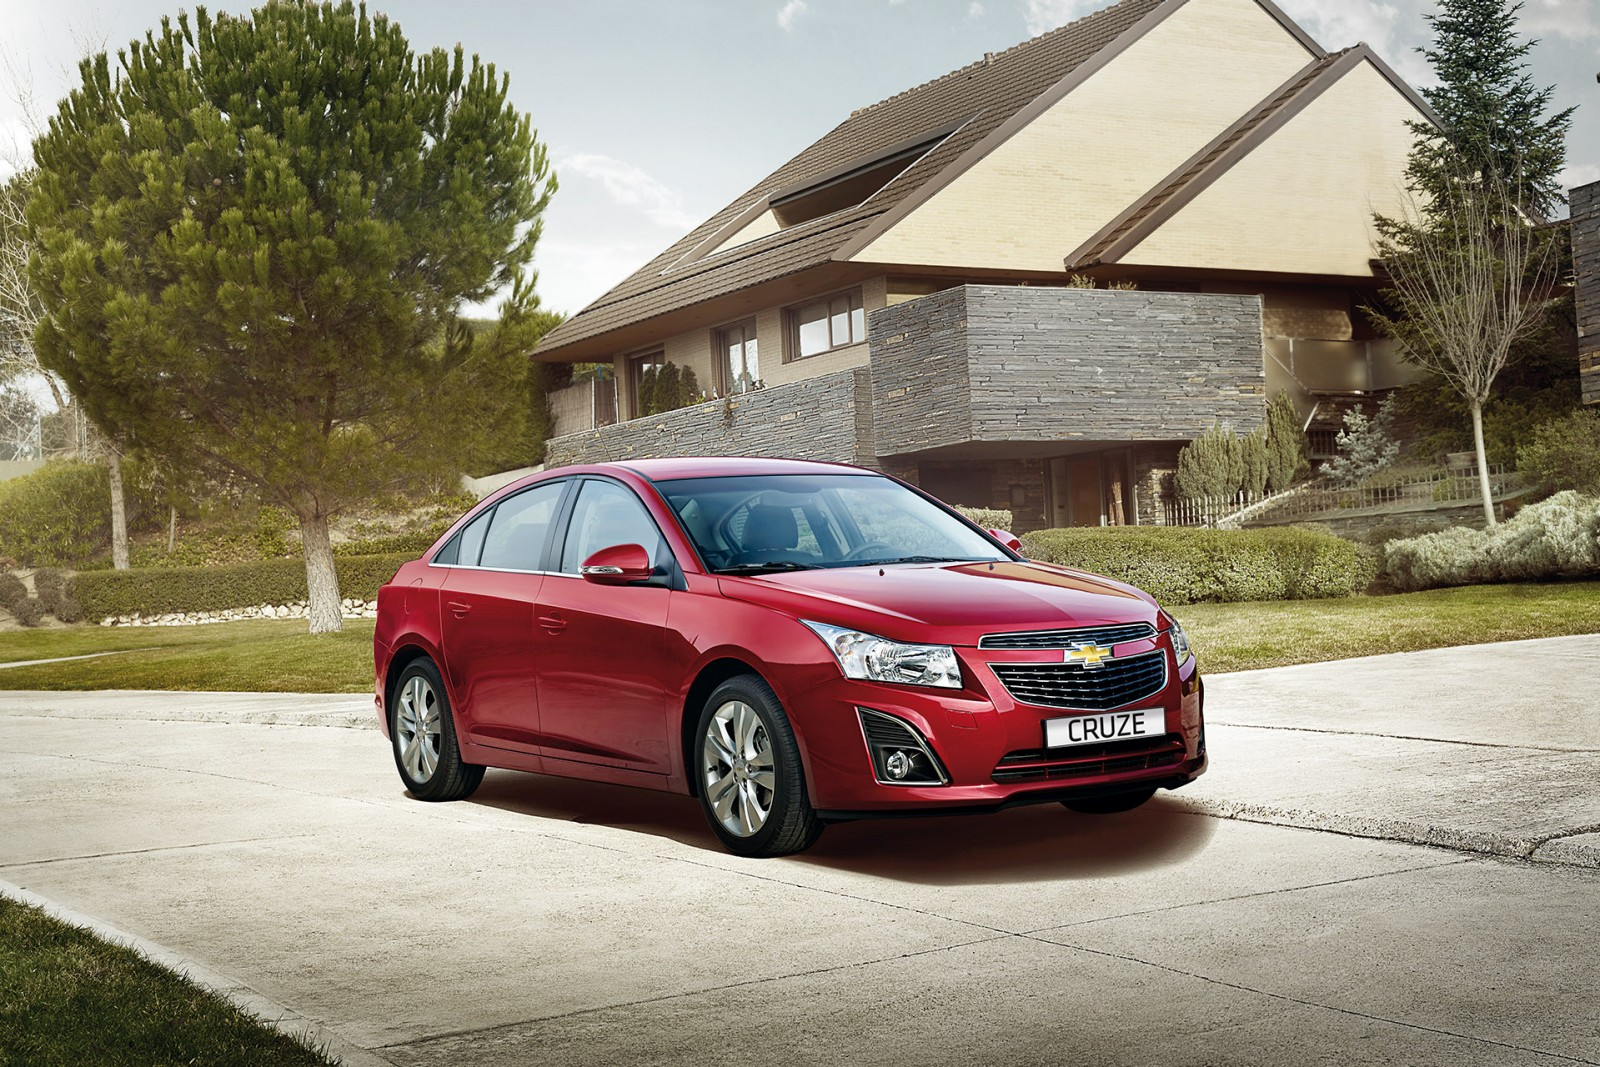 chevrolet wallpaper (chevrolet cruze sedan)